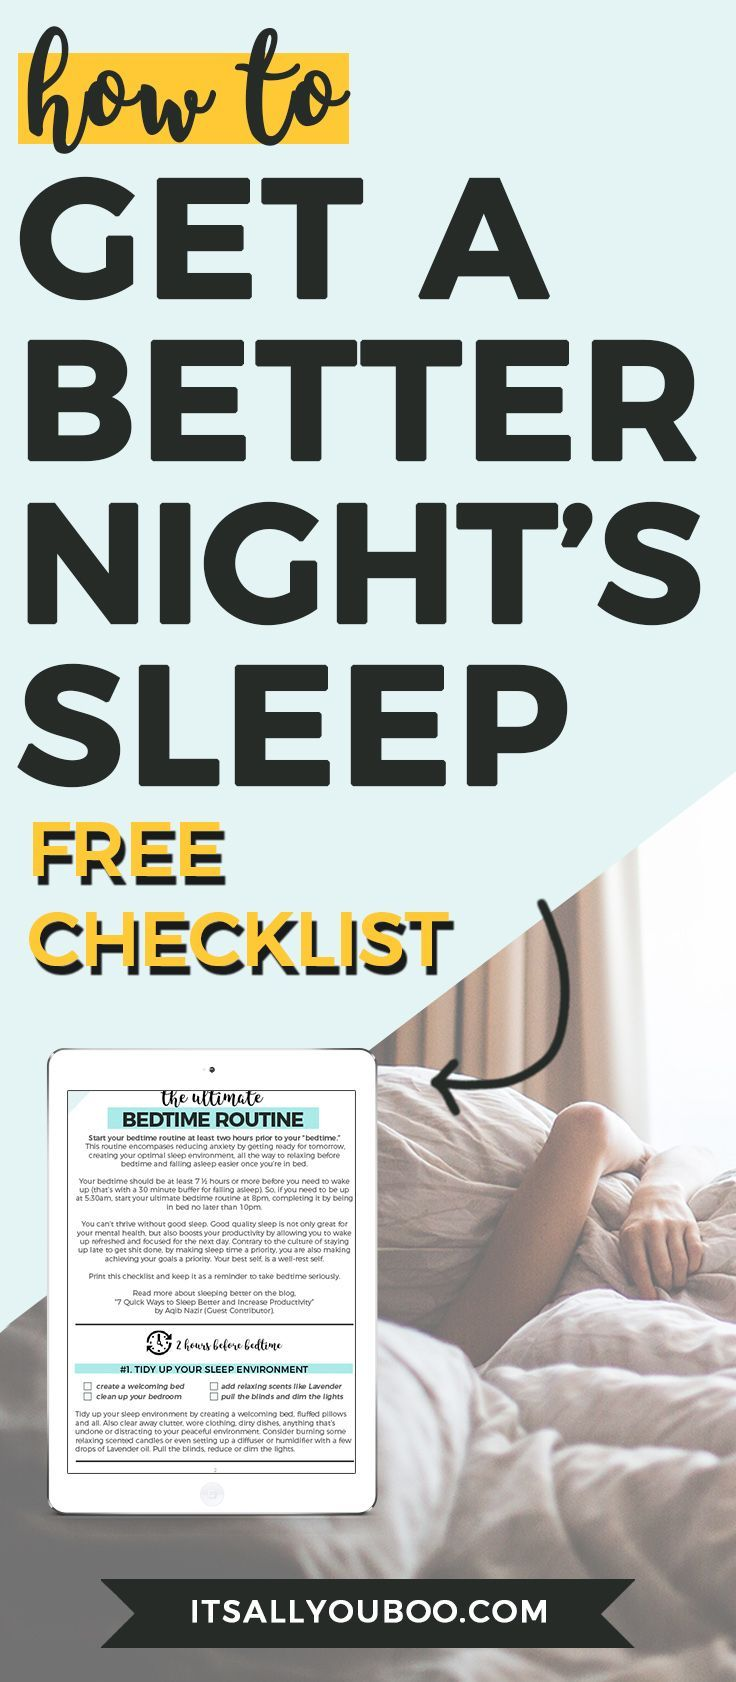 Are you having trouble sleeping? Here are 7 sleep tips and remedies, to help you. Plus, download your free ultimate bedtime routine with tips to help you sleep better.